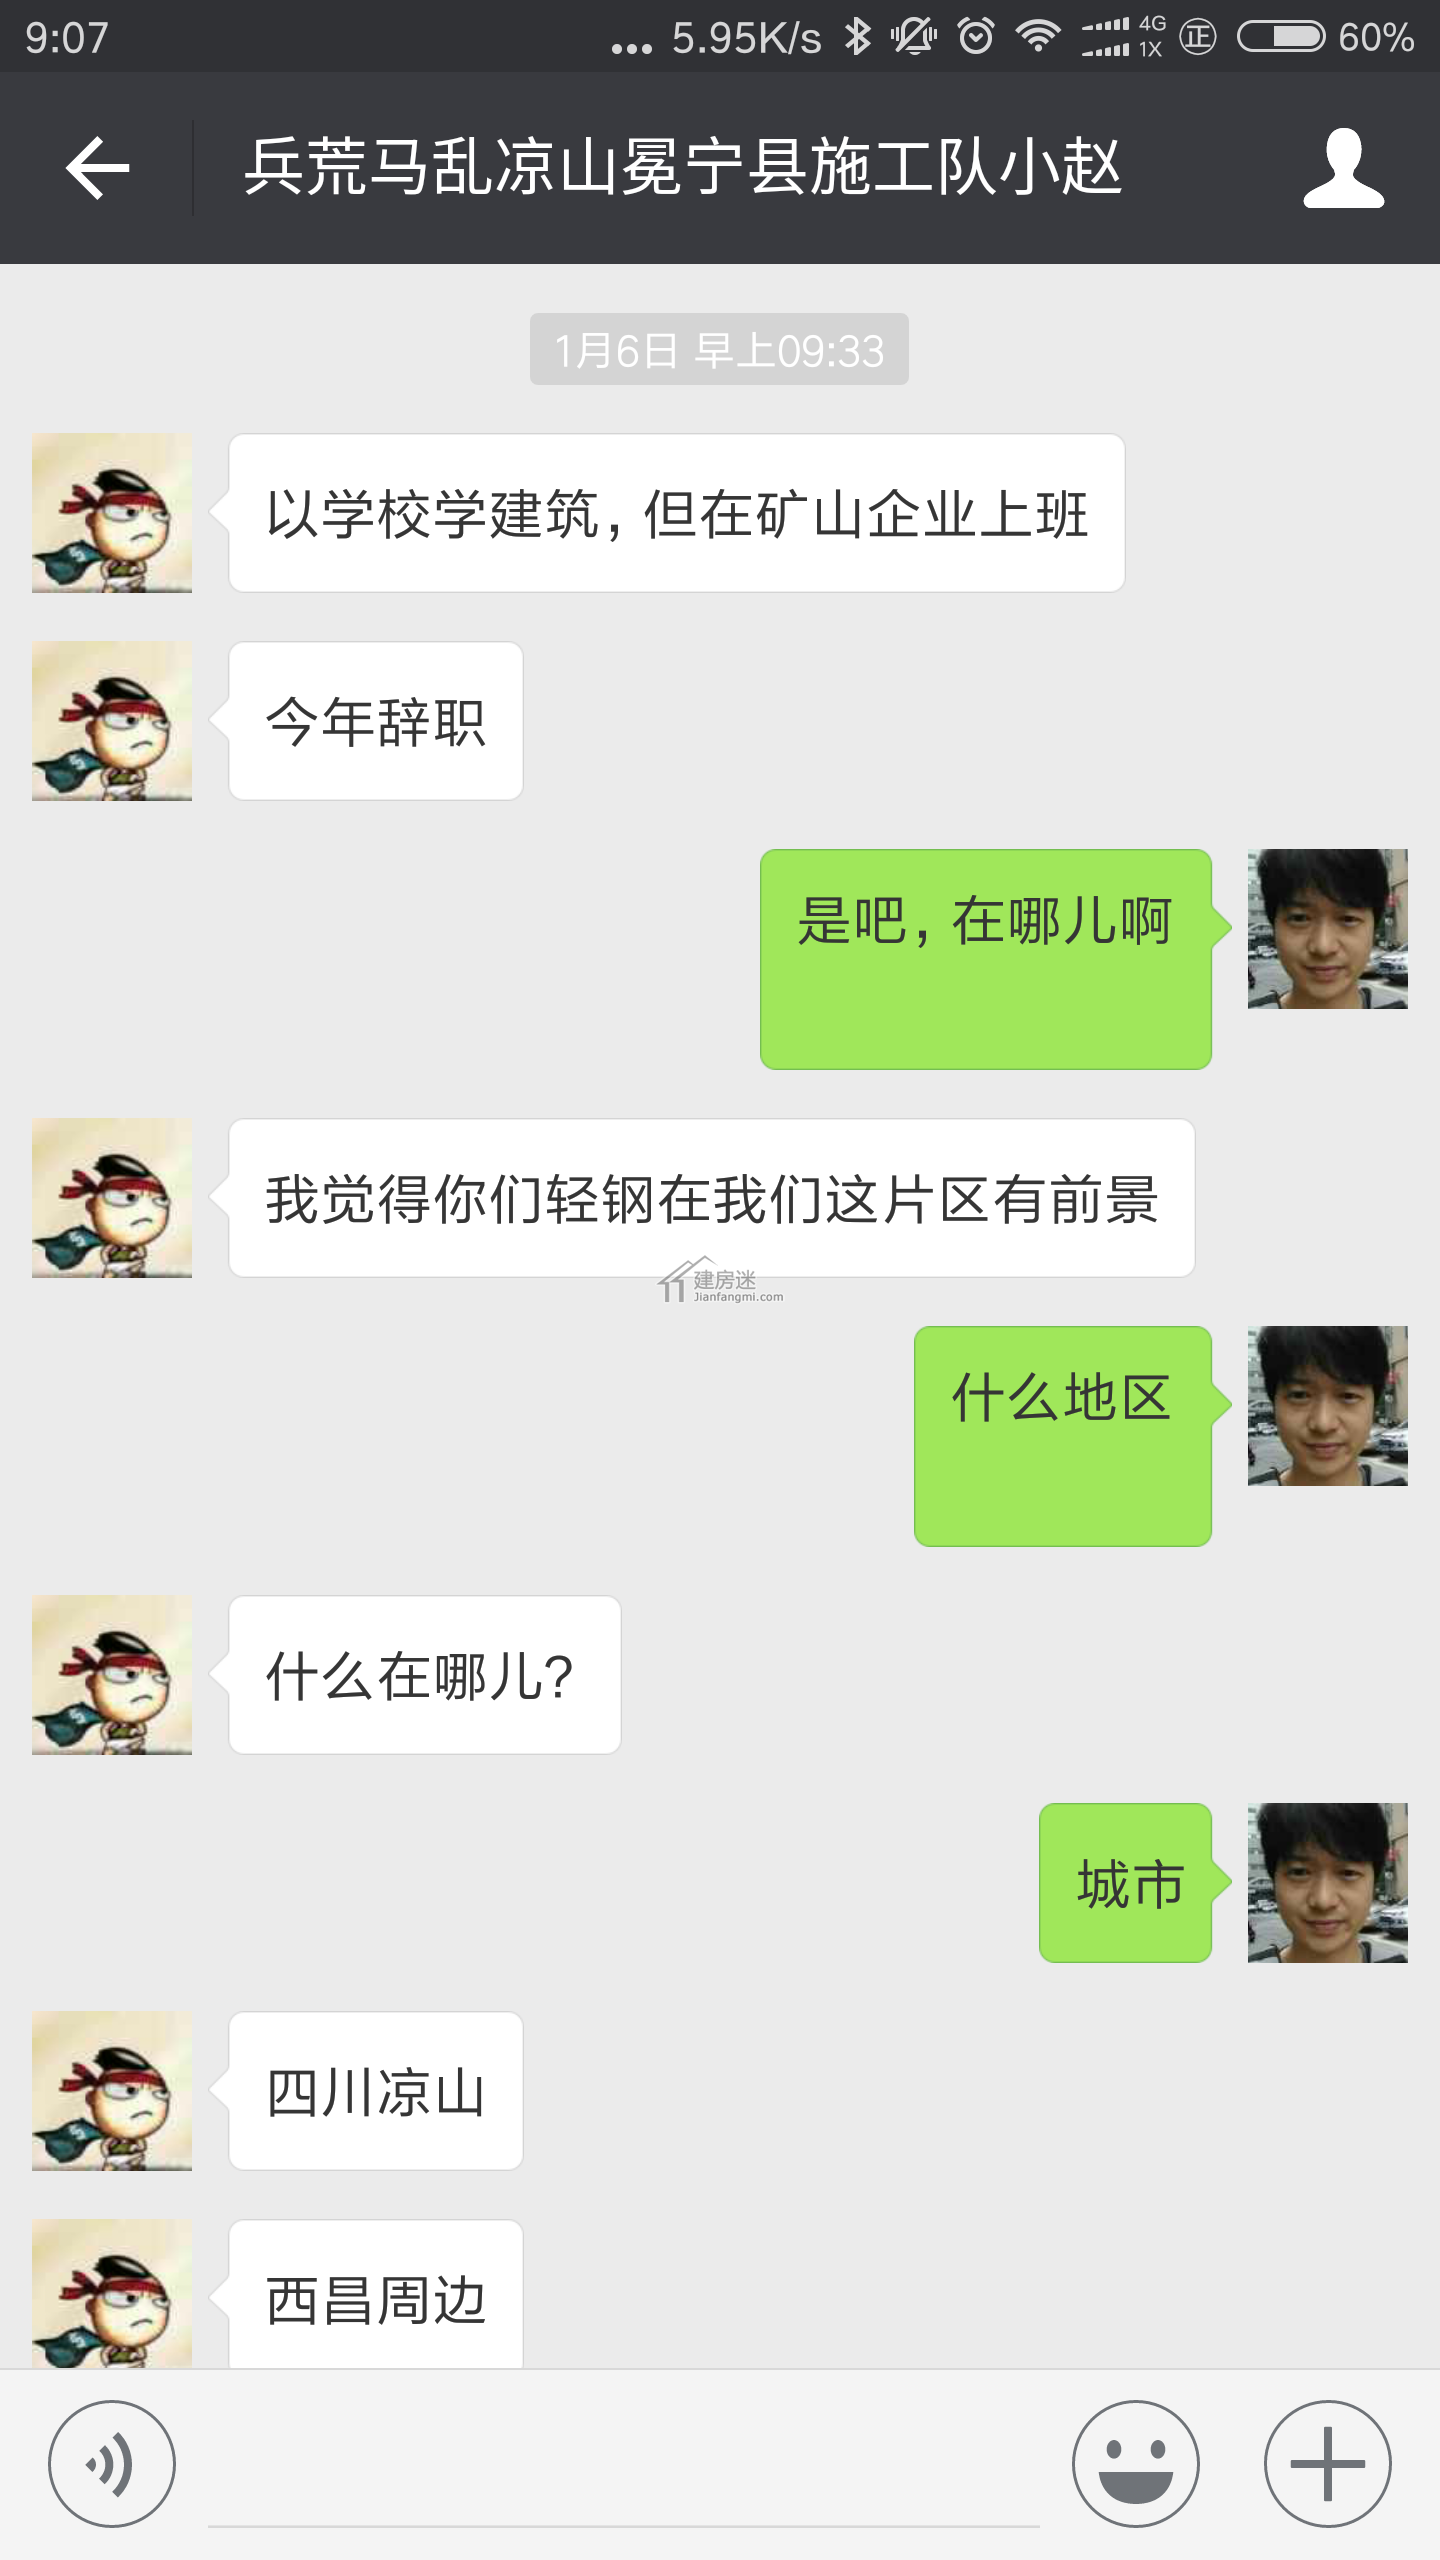 Screenshot_2017-03-08-09-07-17-790_com.tencent.mm.png